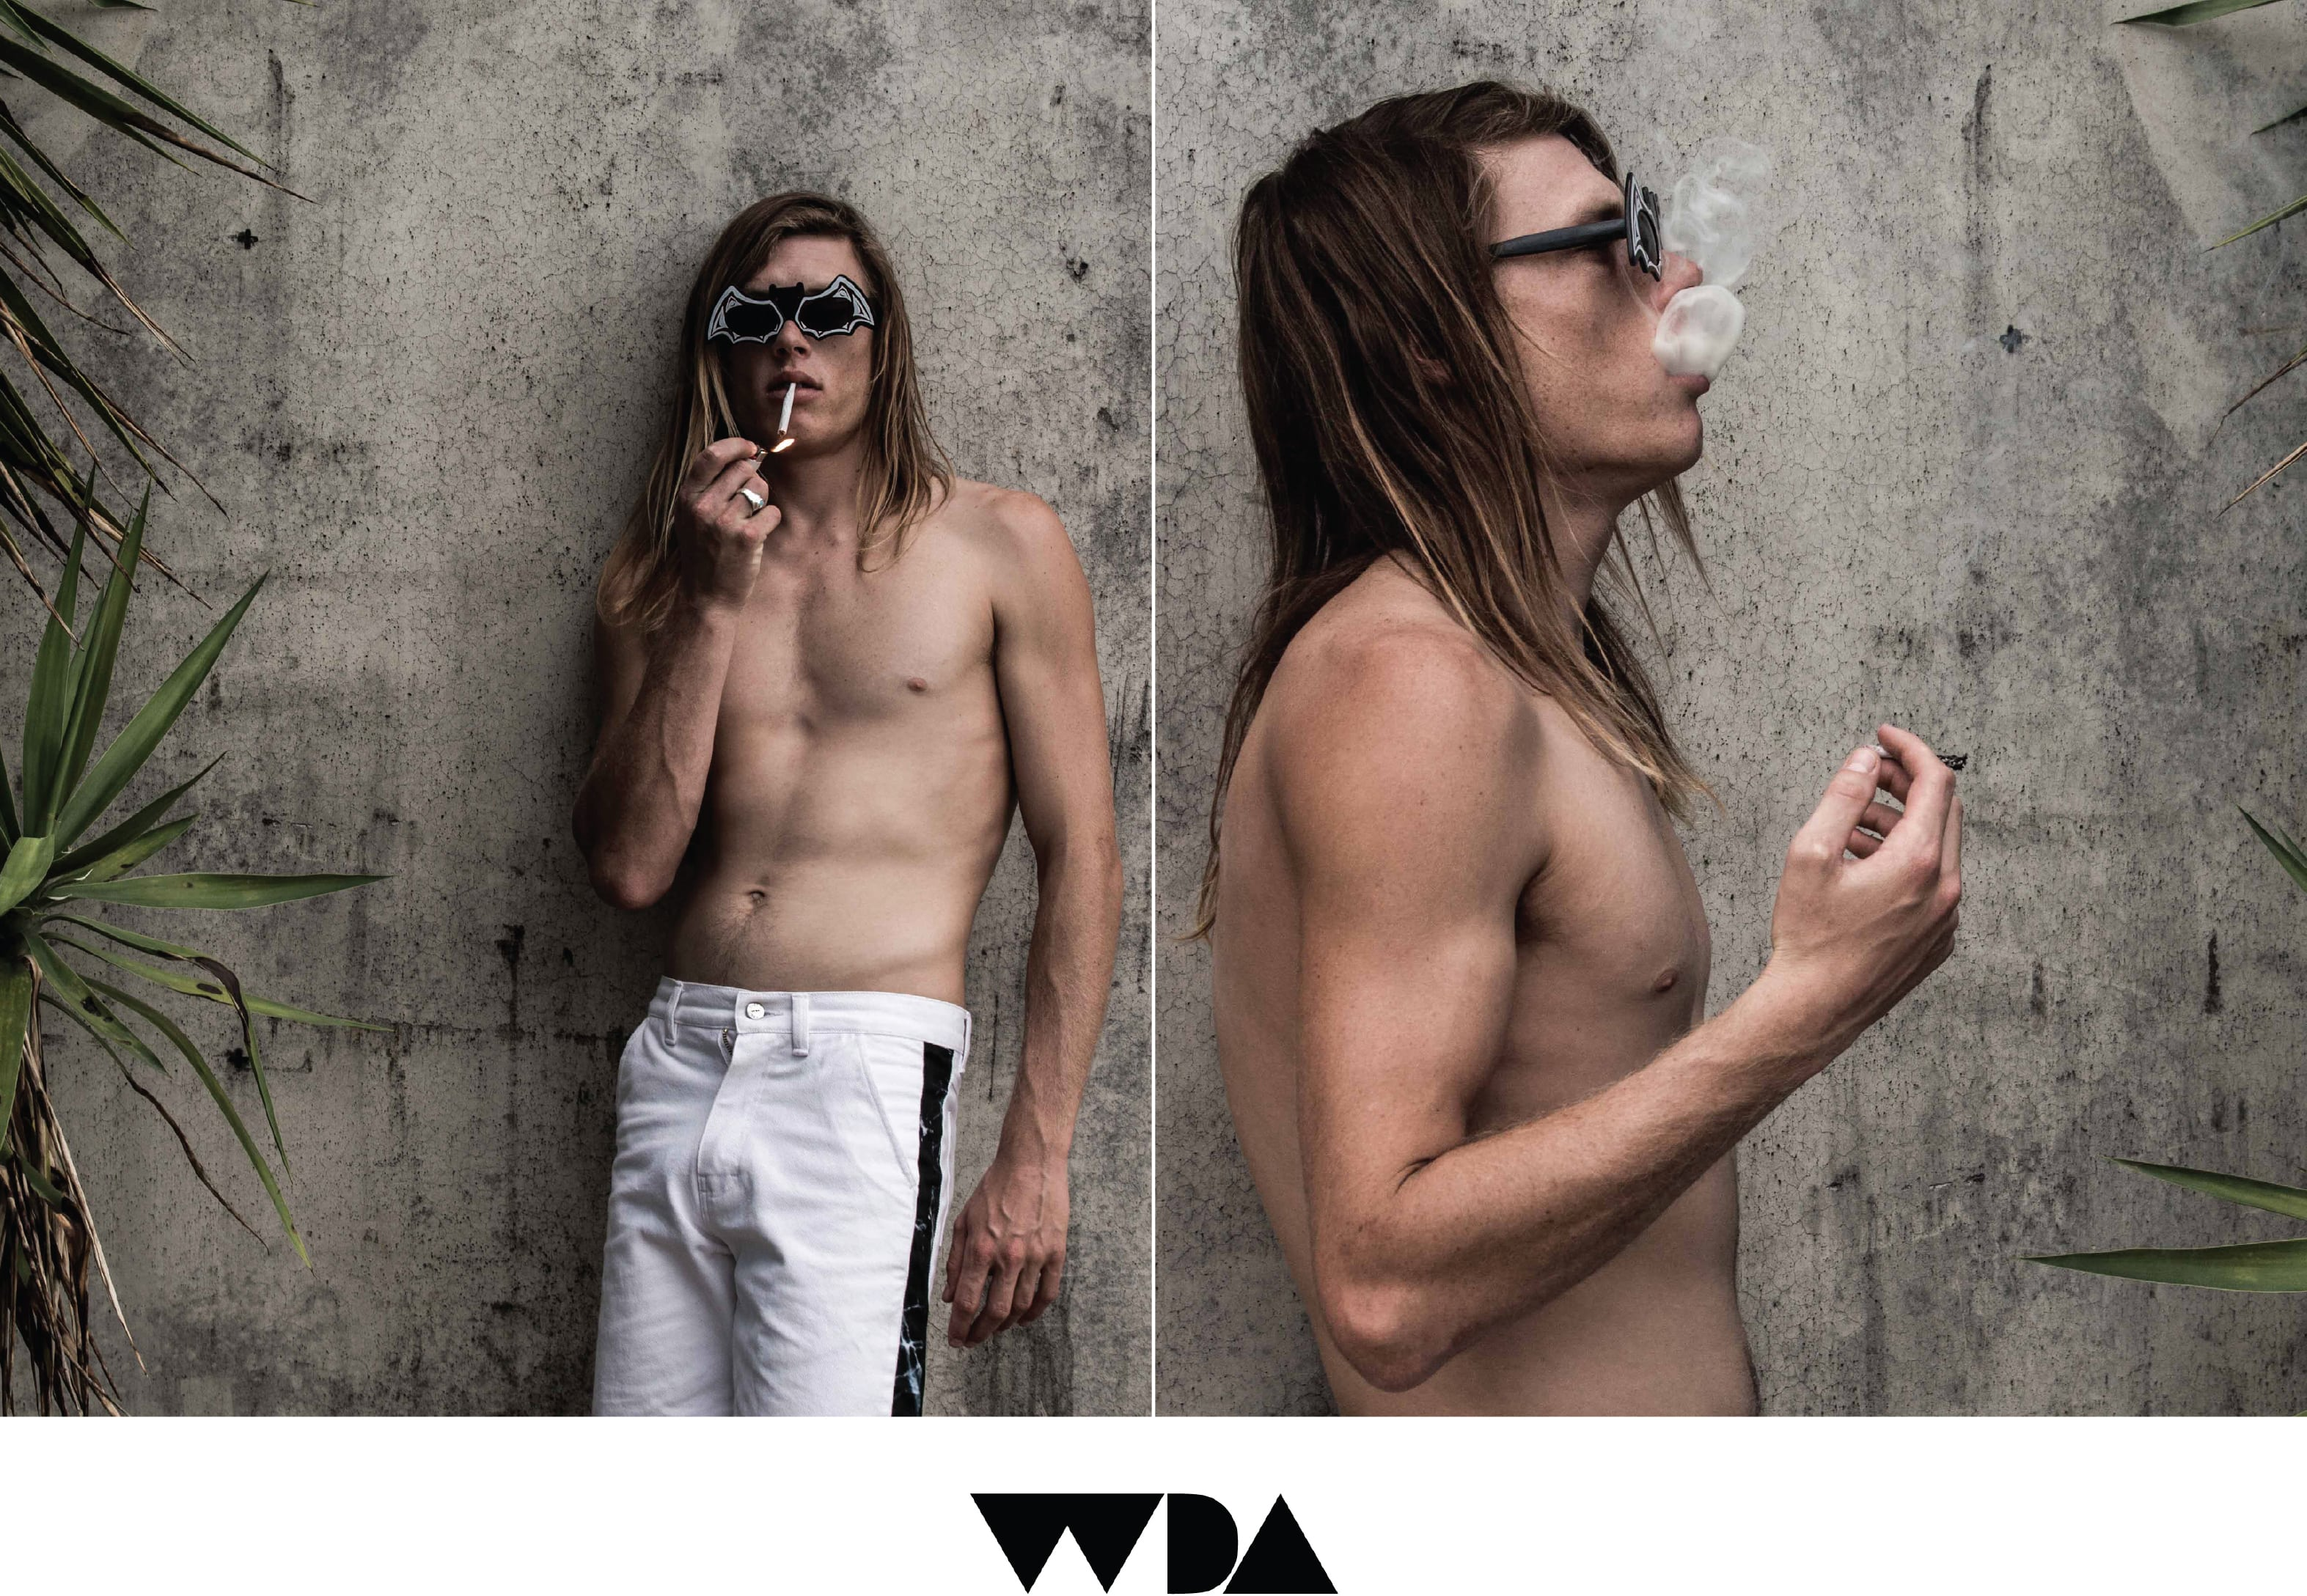 WDA, WE DREAM ALONE, CLOTHING, APPAREL, MENS, DORSAL FIN, DENIM SHORTS, MARBLE, BLACK, WHITE, WALK SHORTS, SMOKE, CONCRETE, MAN, SMOKING